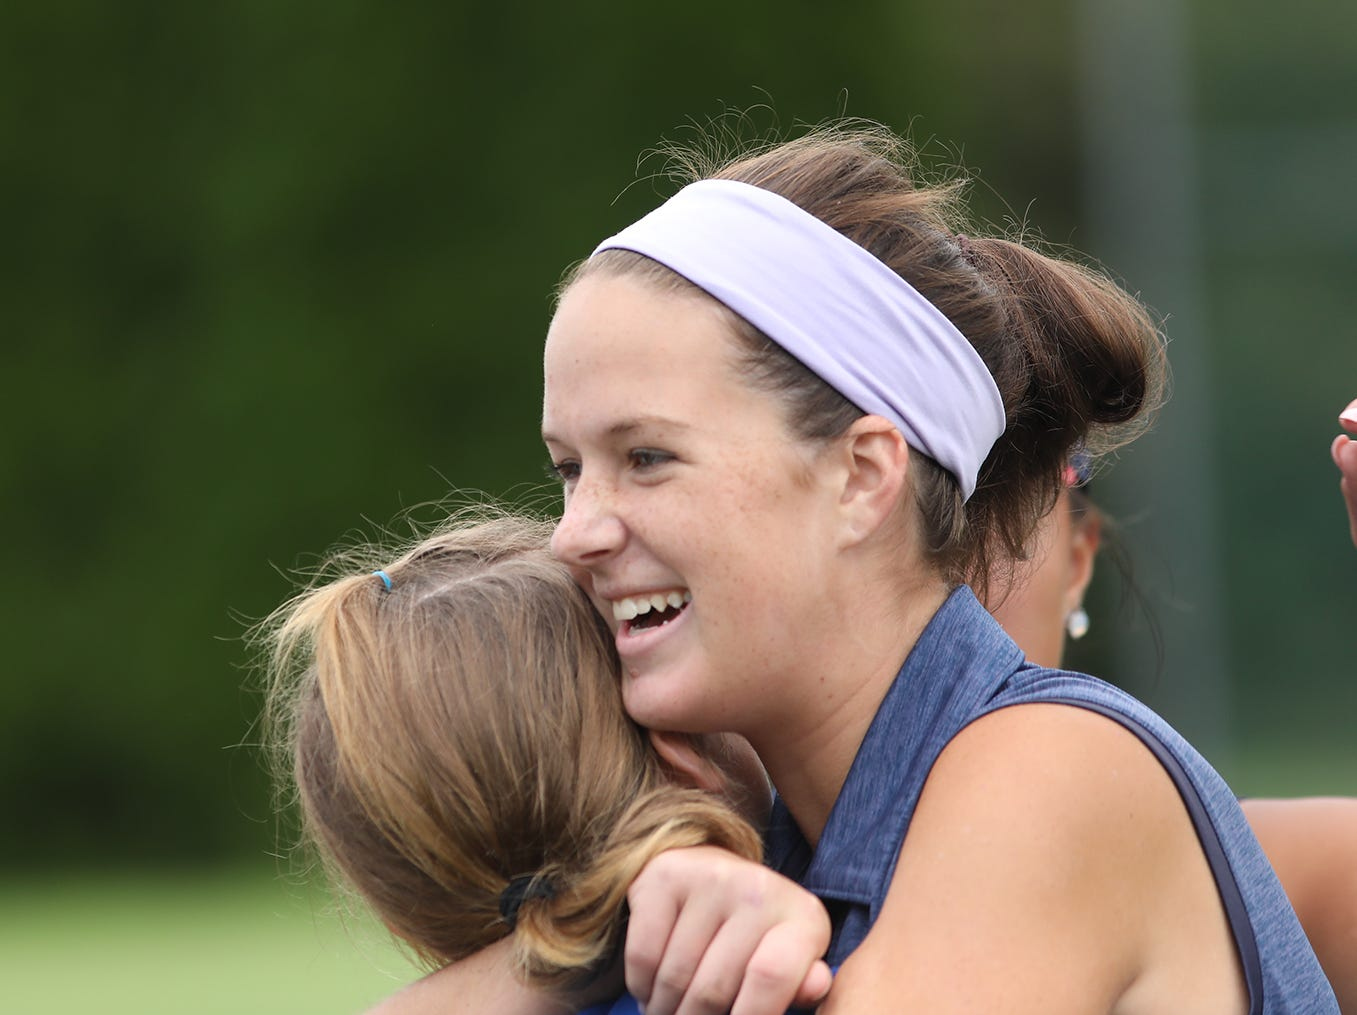 St. Henry's Lauren Mays celebrates after she qualified for the state tournament after a playoff hole during the regional girls golf tournament,  Thursday, Sept. 27, 2018.